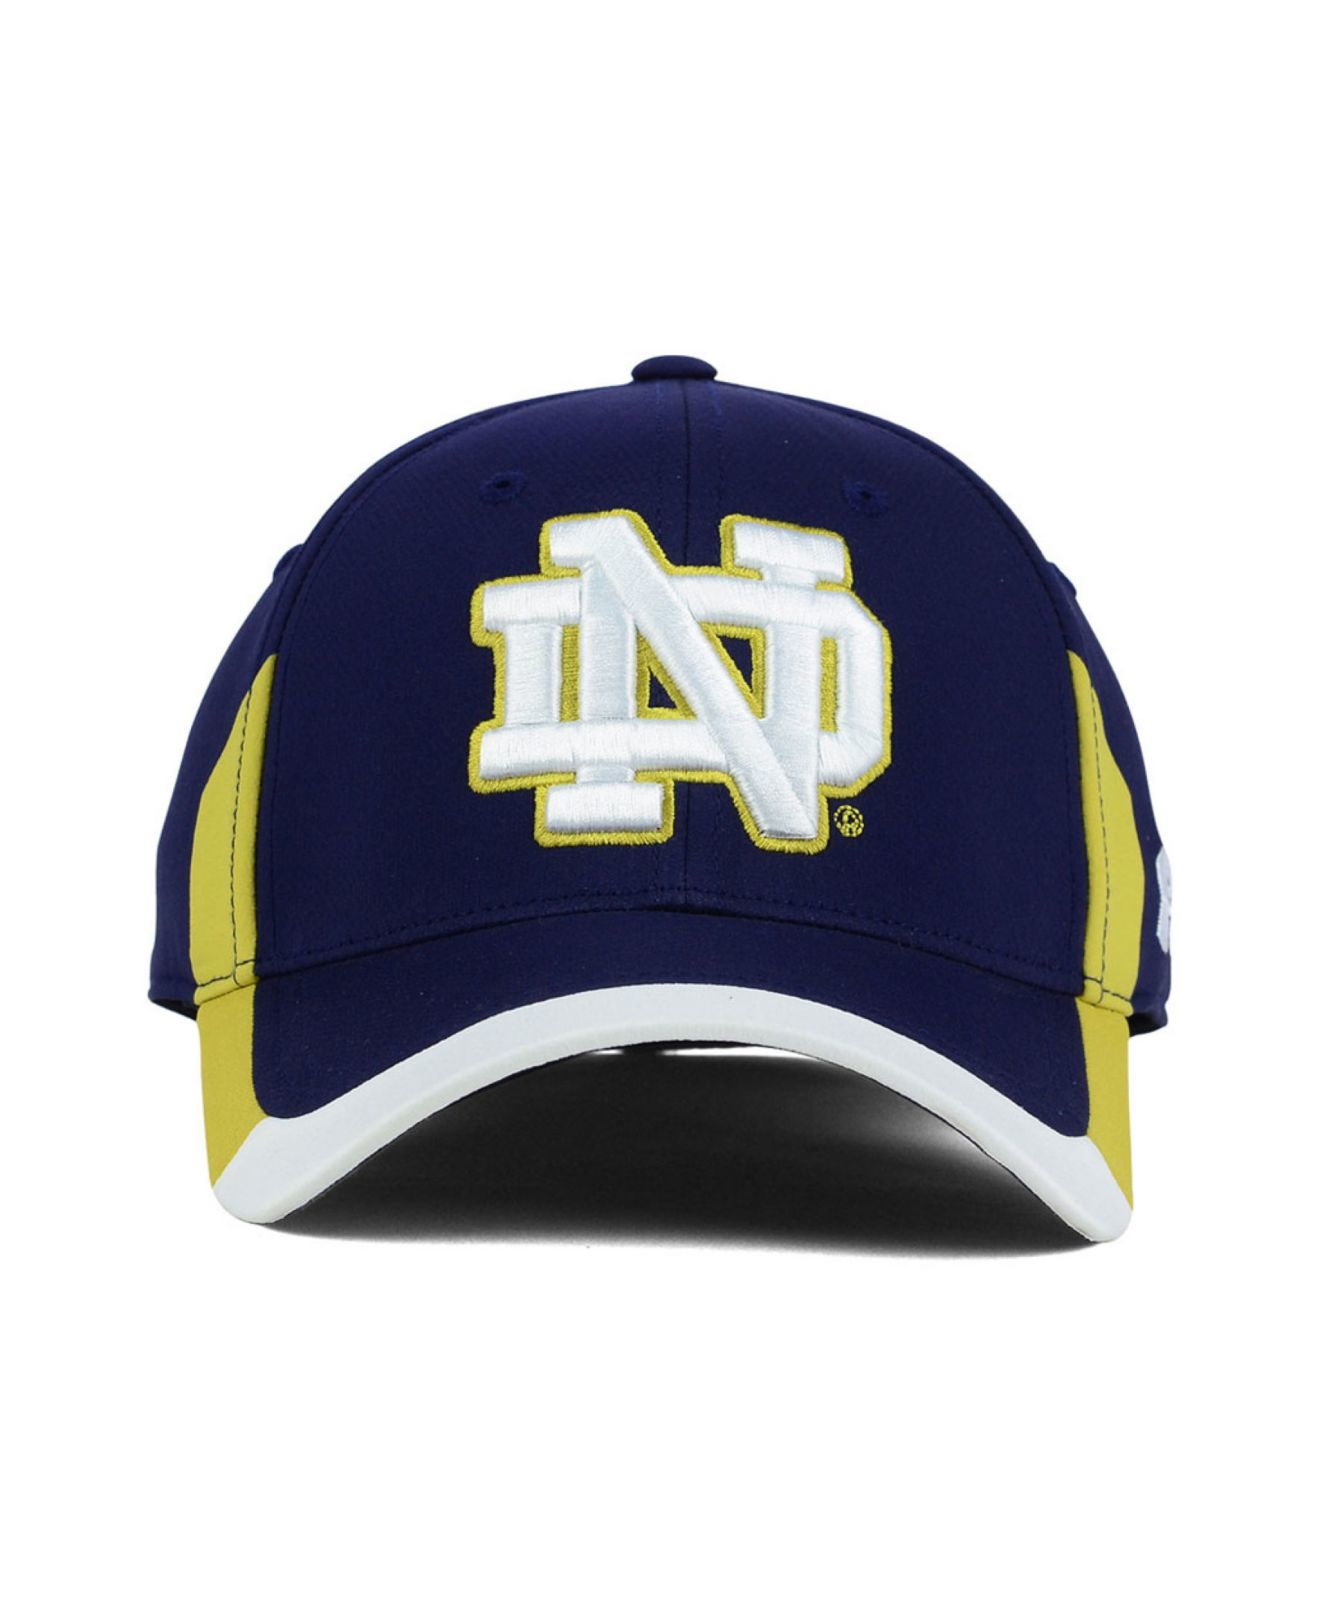 67cf8acebfc5d ... fitted cap hat e6eb6 2ab7b  france lyst under armour notre dame  fighting irish ncaa renegade cap in 6cf34 785d2